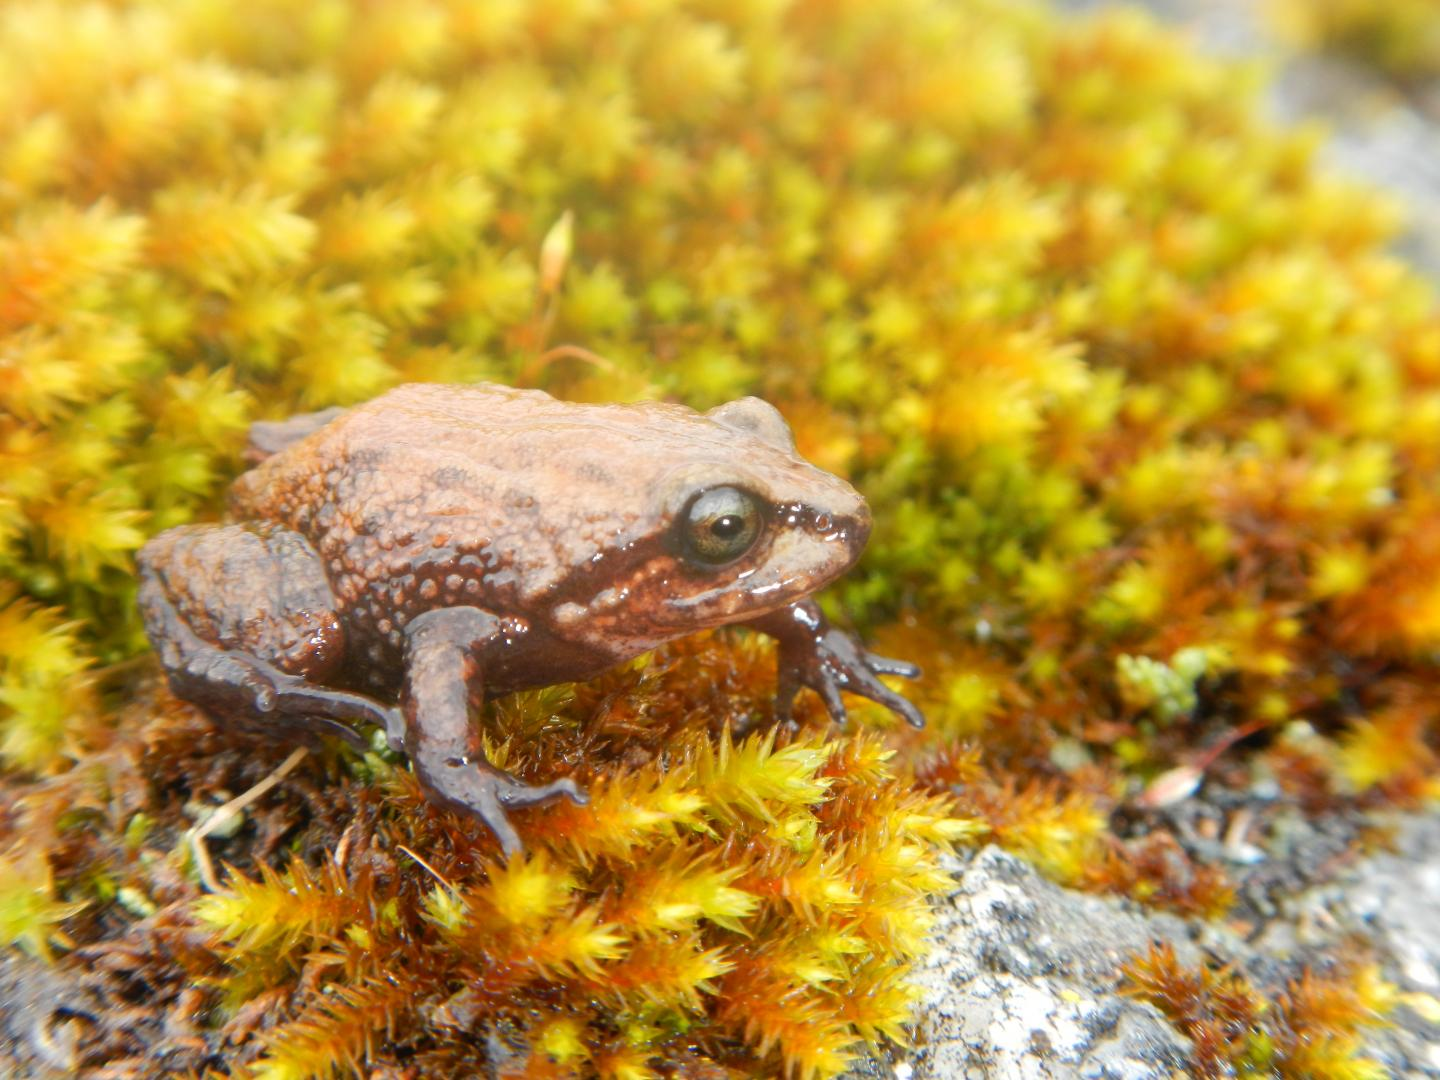 Attenboroughi frog